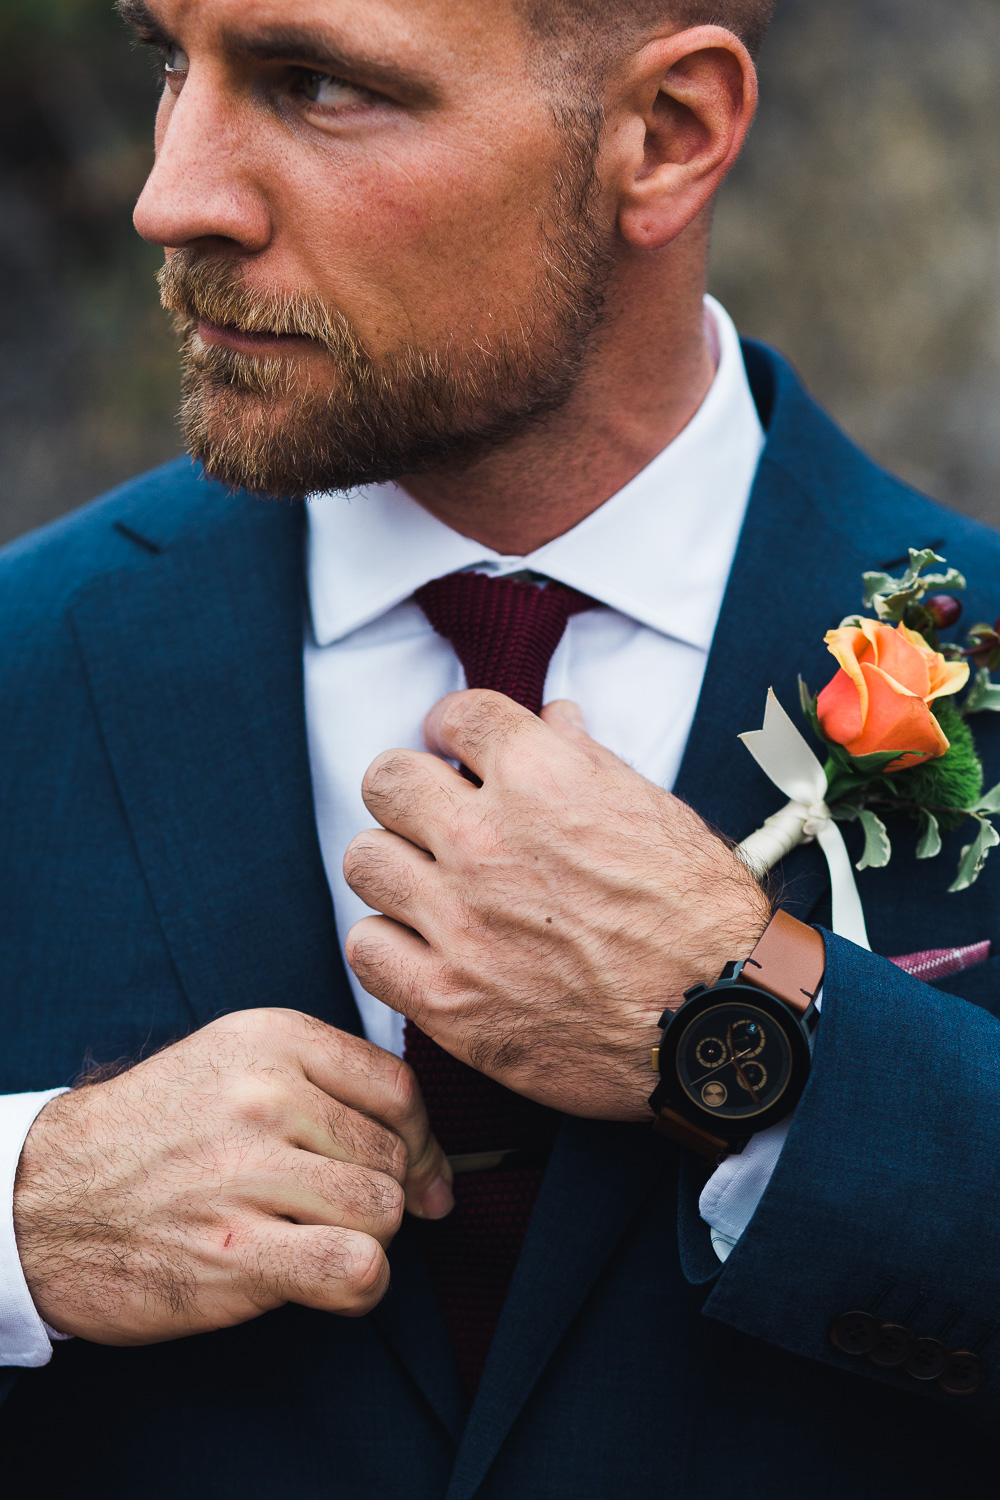 Blue suit maroon knit tie watch groom close up portrait details